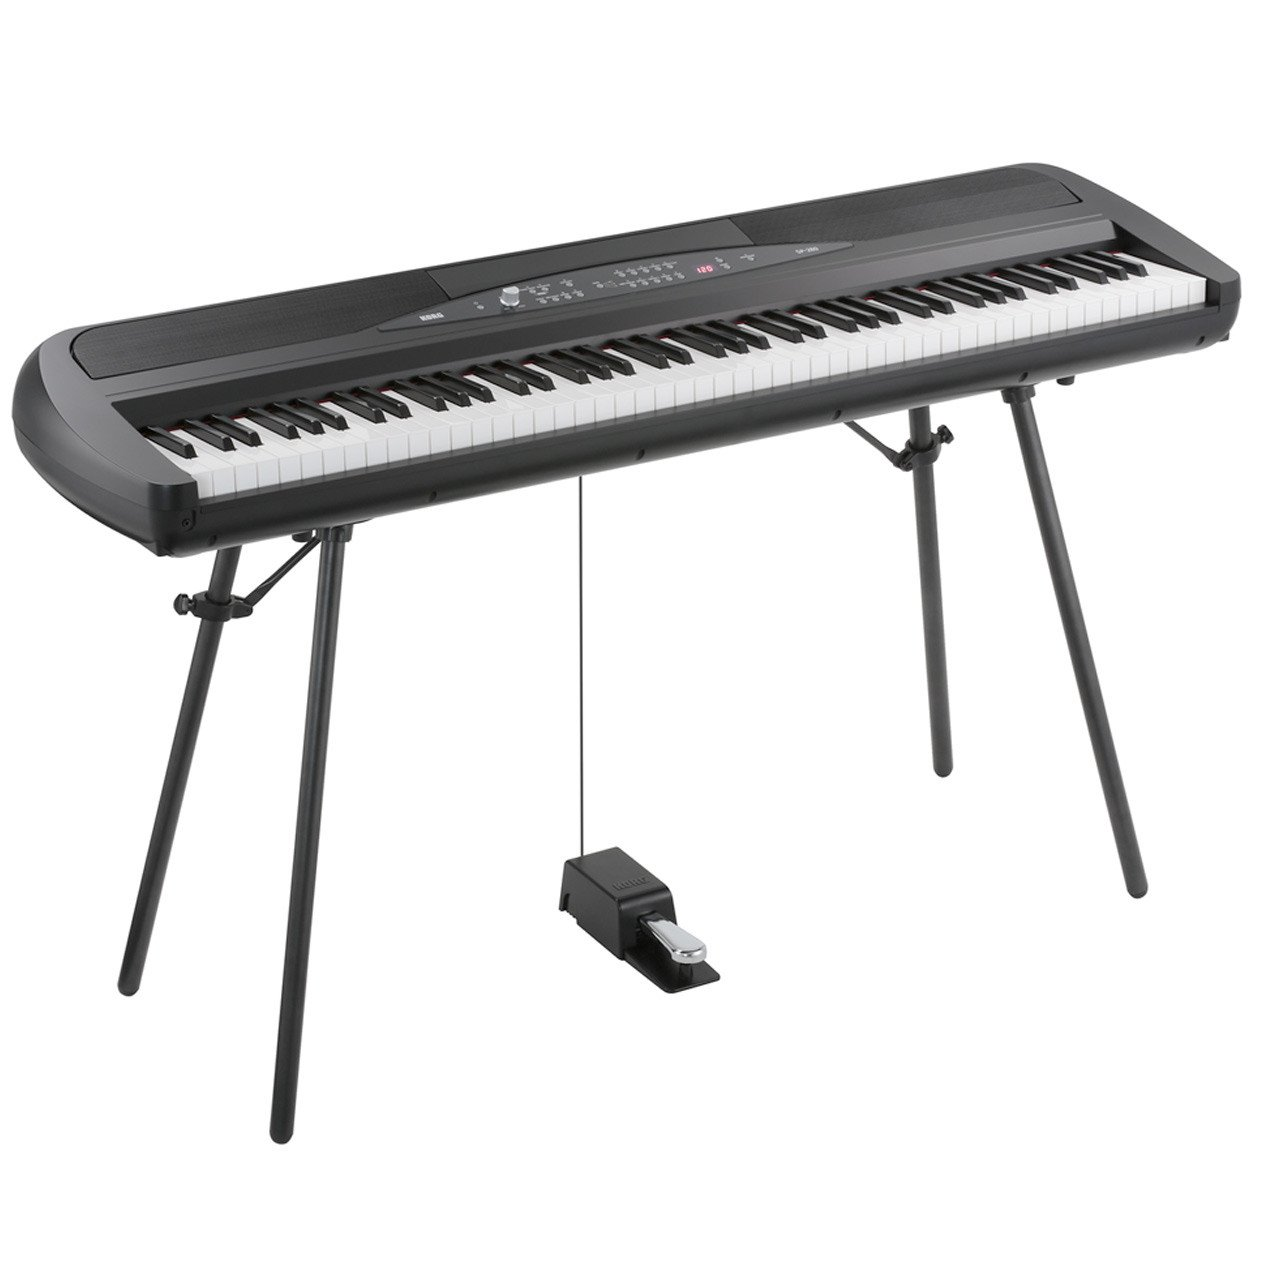 Digital Pianos - Korg SP-280 Digital Piano